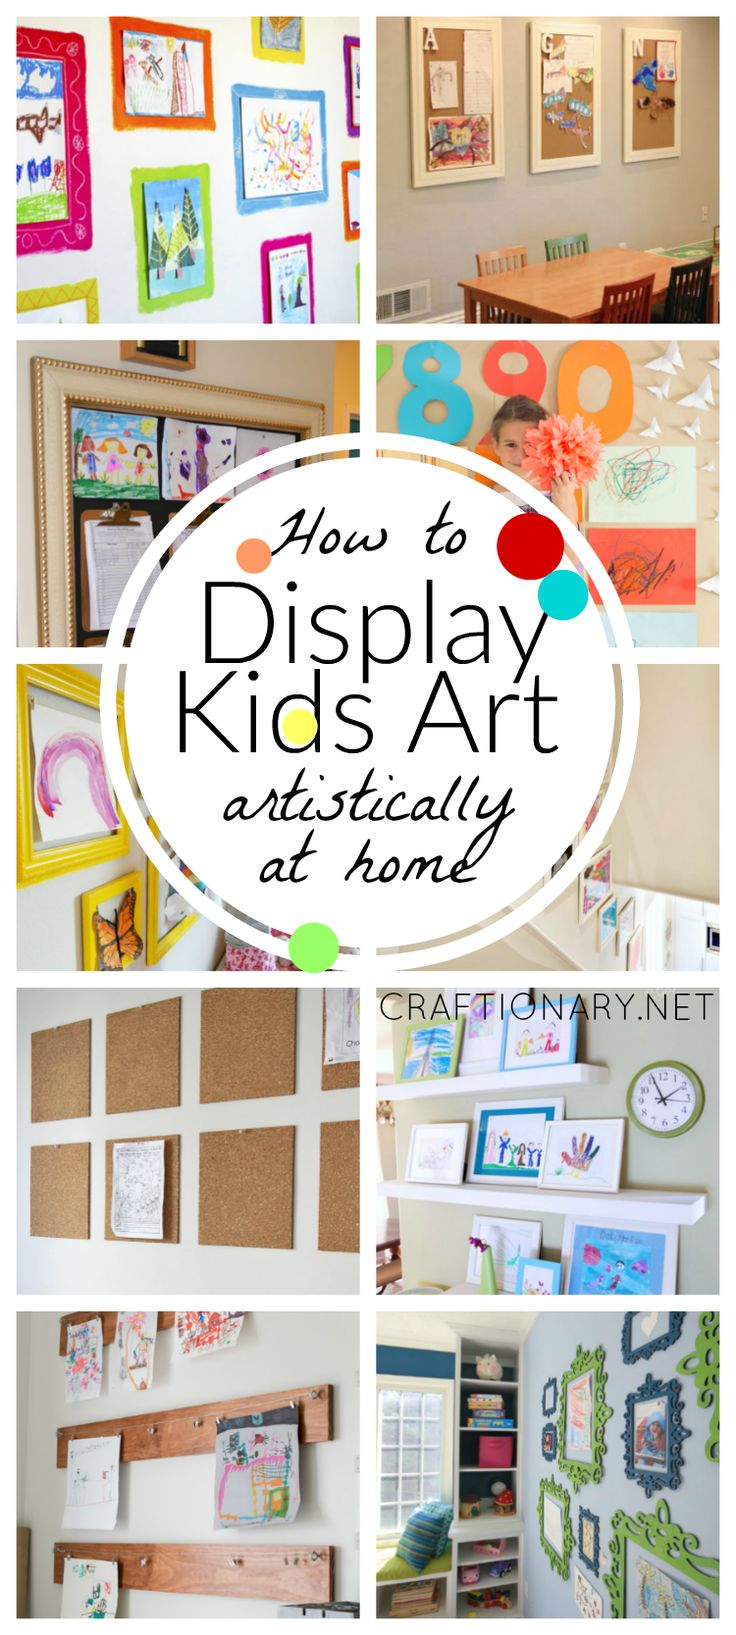 Best Ideas To Display Kids Art at home artistically to encourage the young artist and creative artwork created by children in a way that adds to decor.